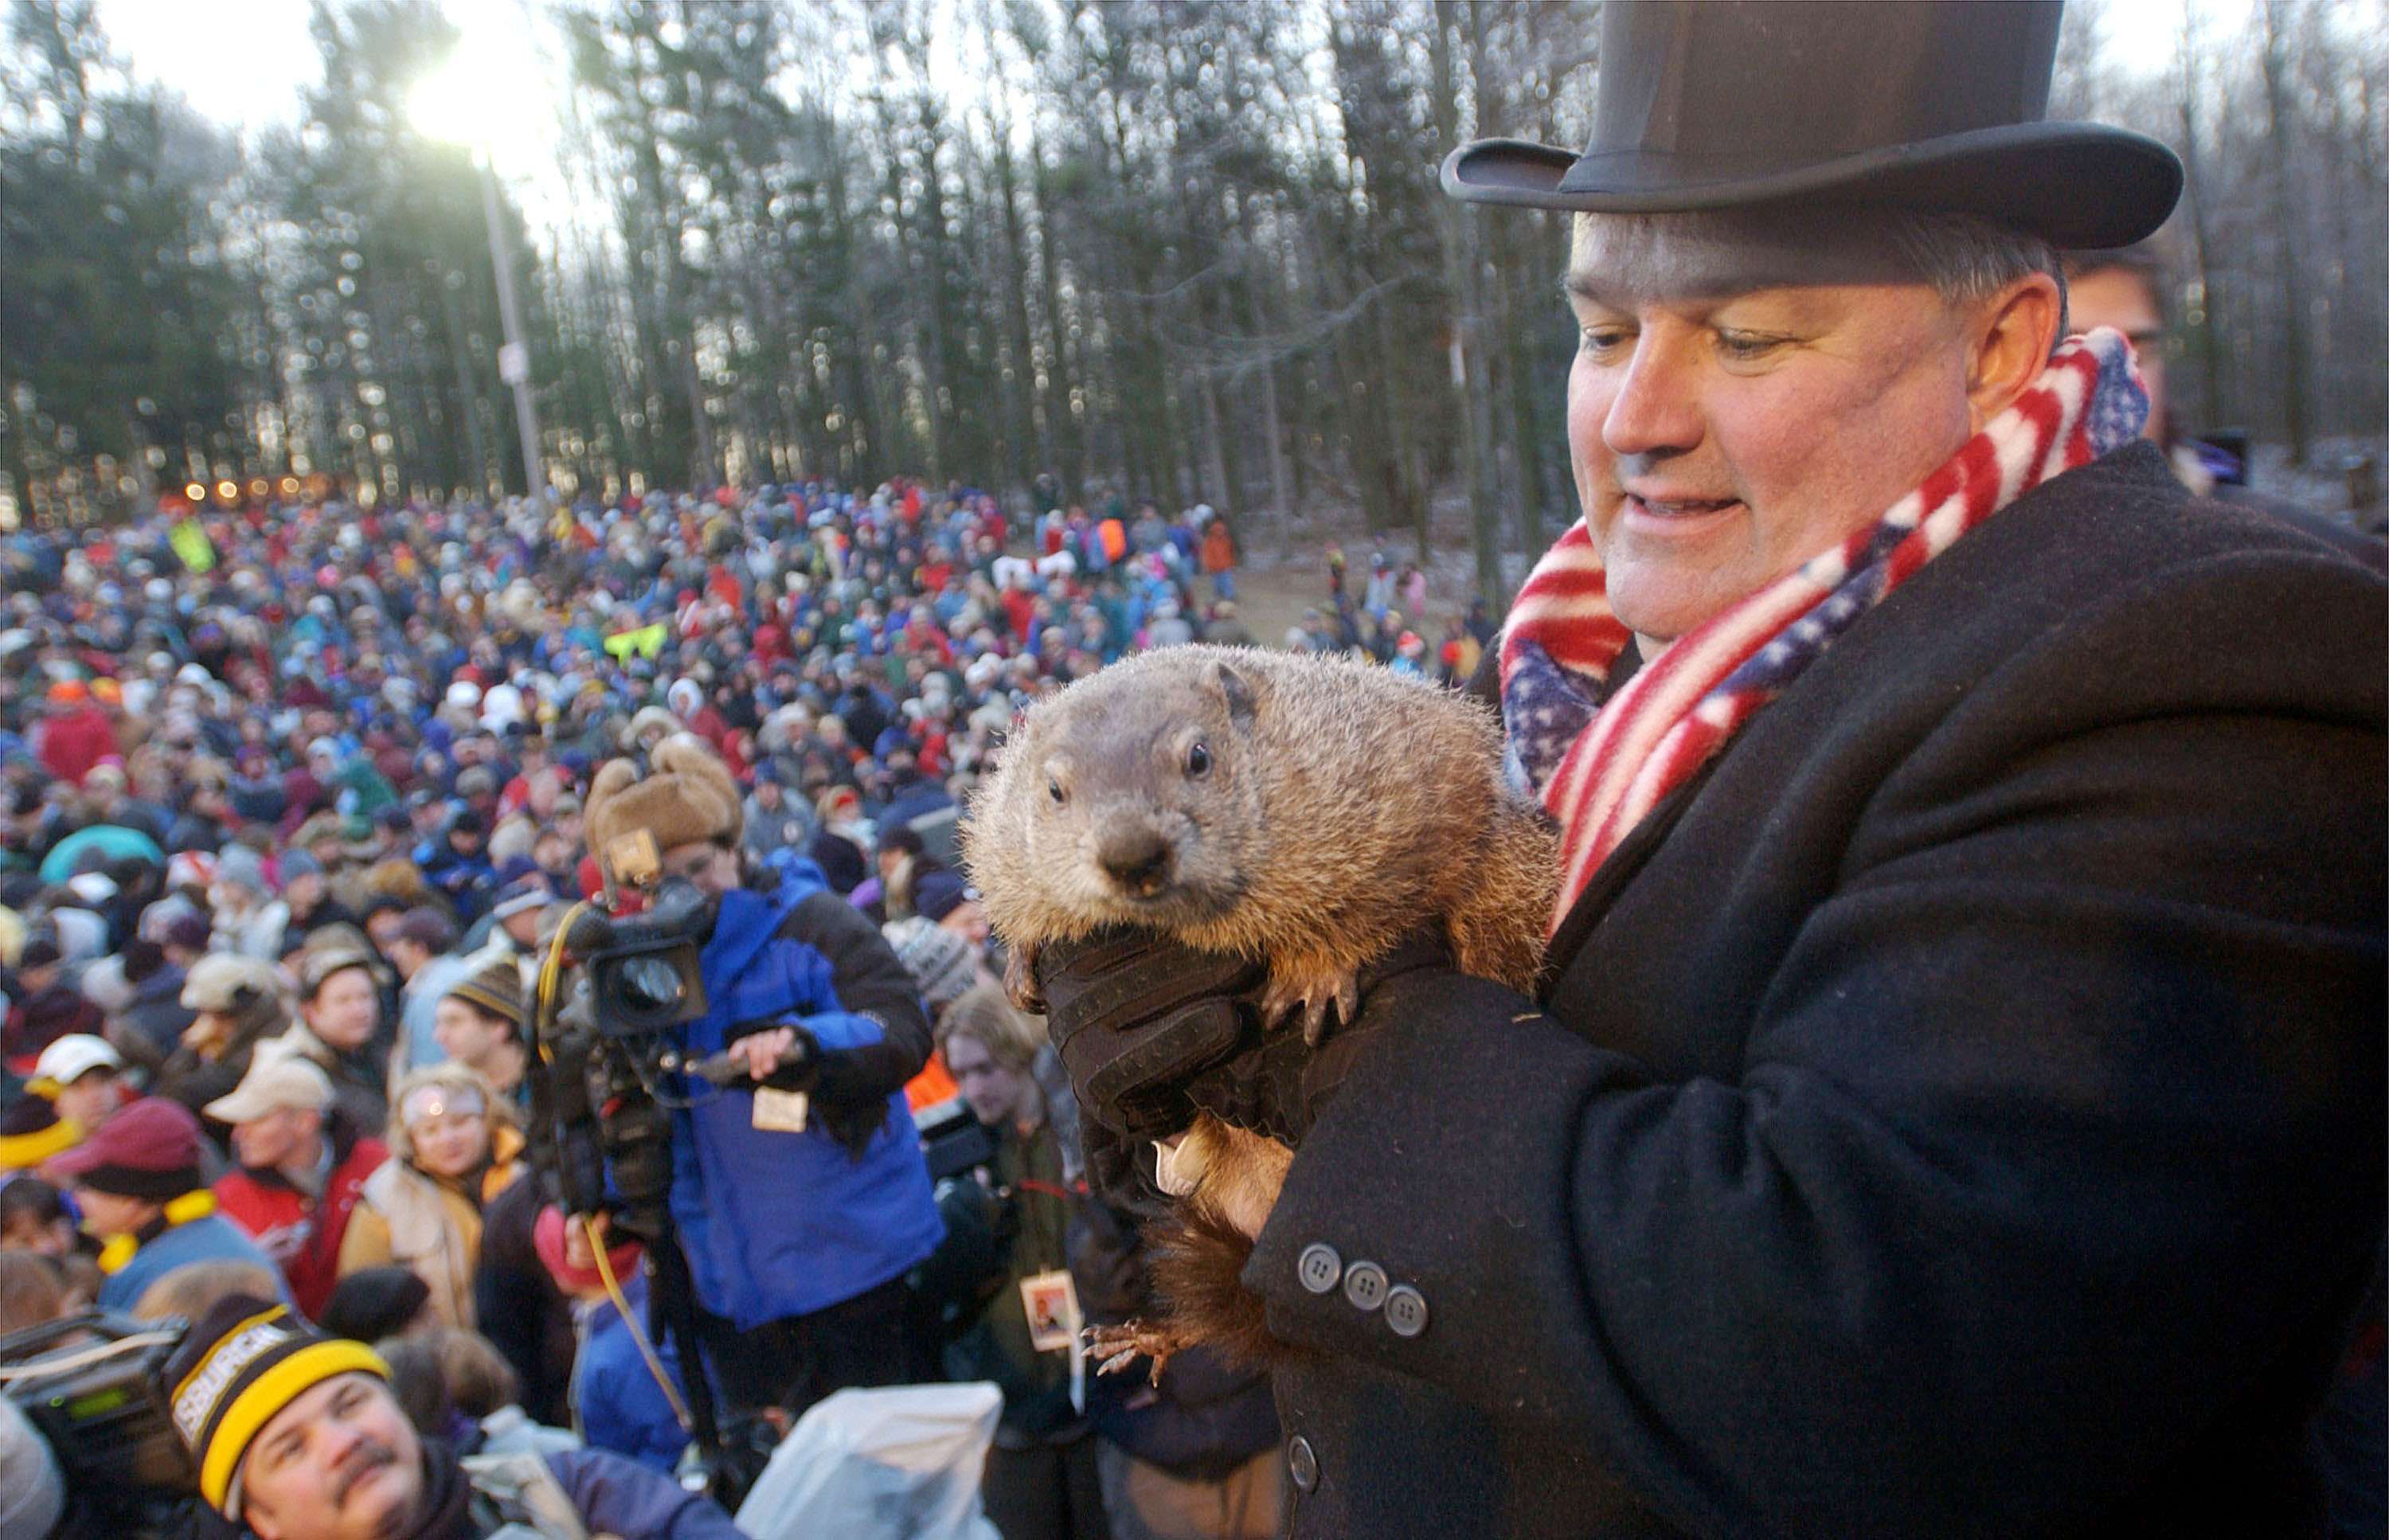 DC's groundhog makes his prediction on spring - 6 more weeks